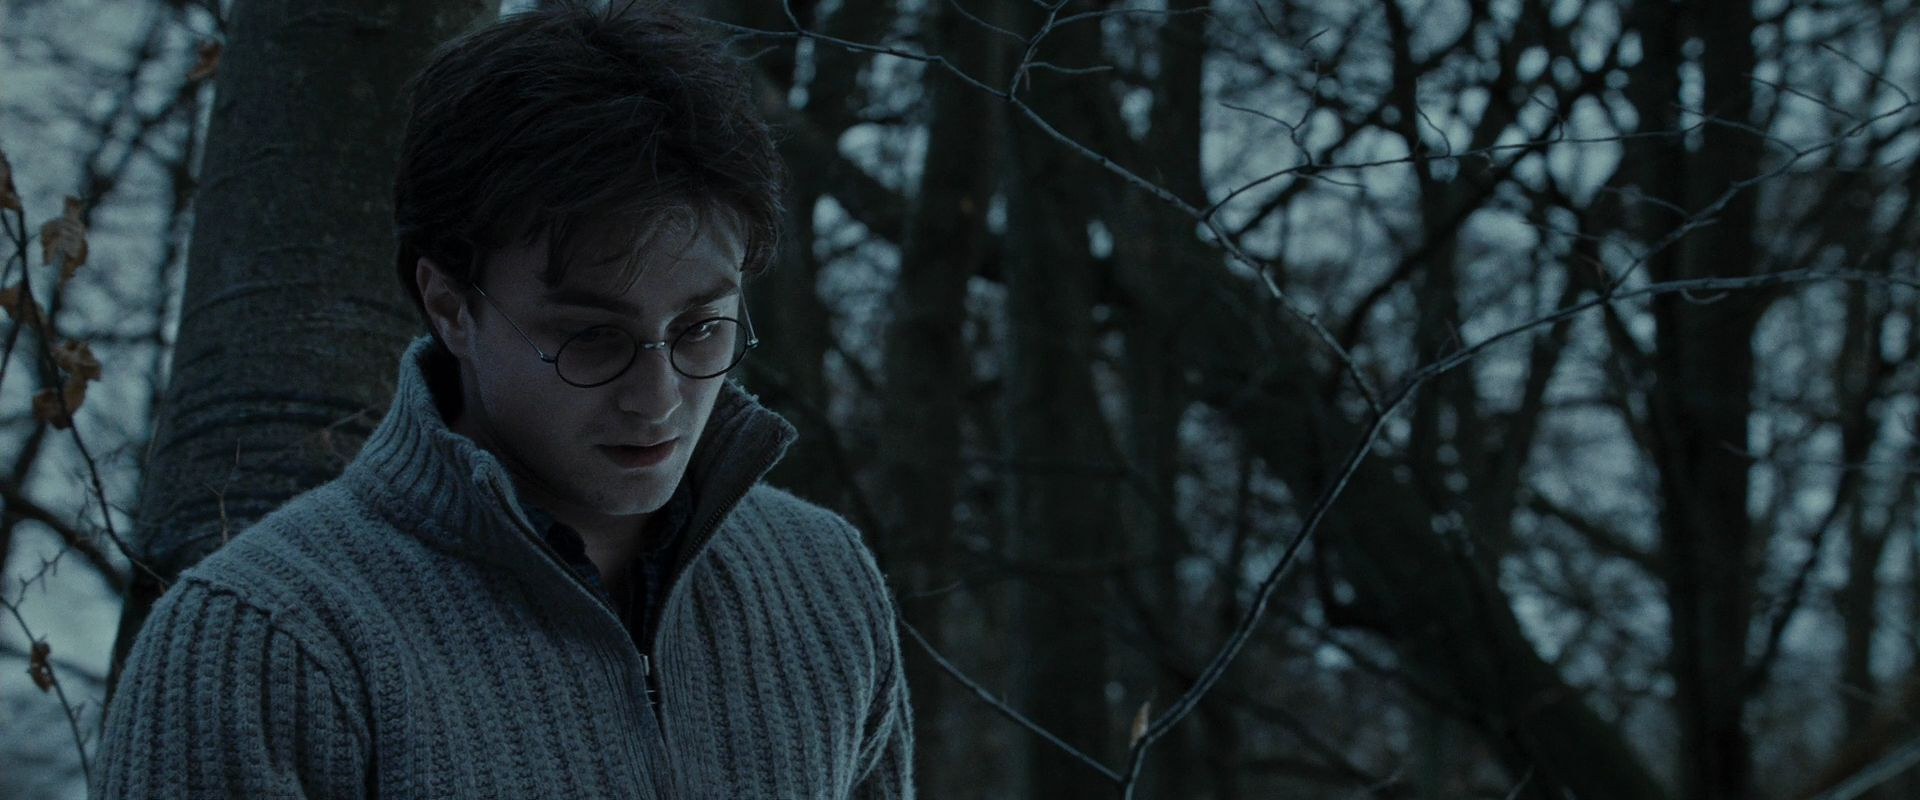 https://i2.wp.com/images4.fanpop.com/image/photos/20800000/Harry-Potter-and-the-Deathly-Hallows-Part-1-BluRay-harry-potter-20891868-1920-800.jpg